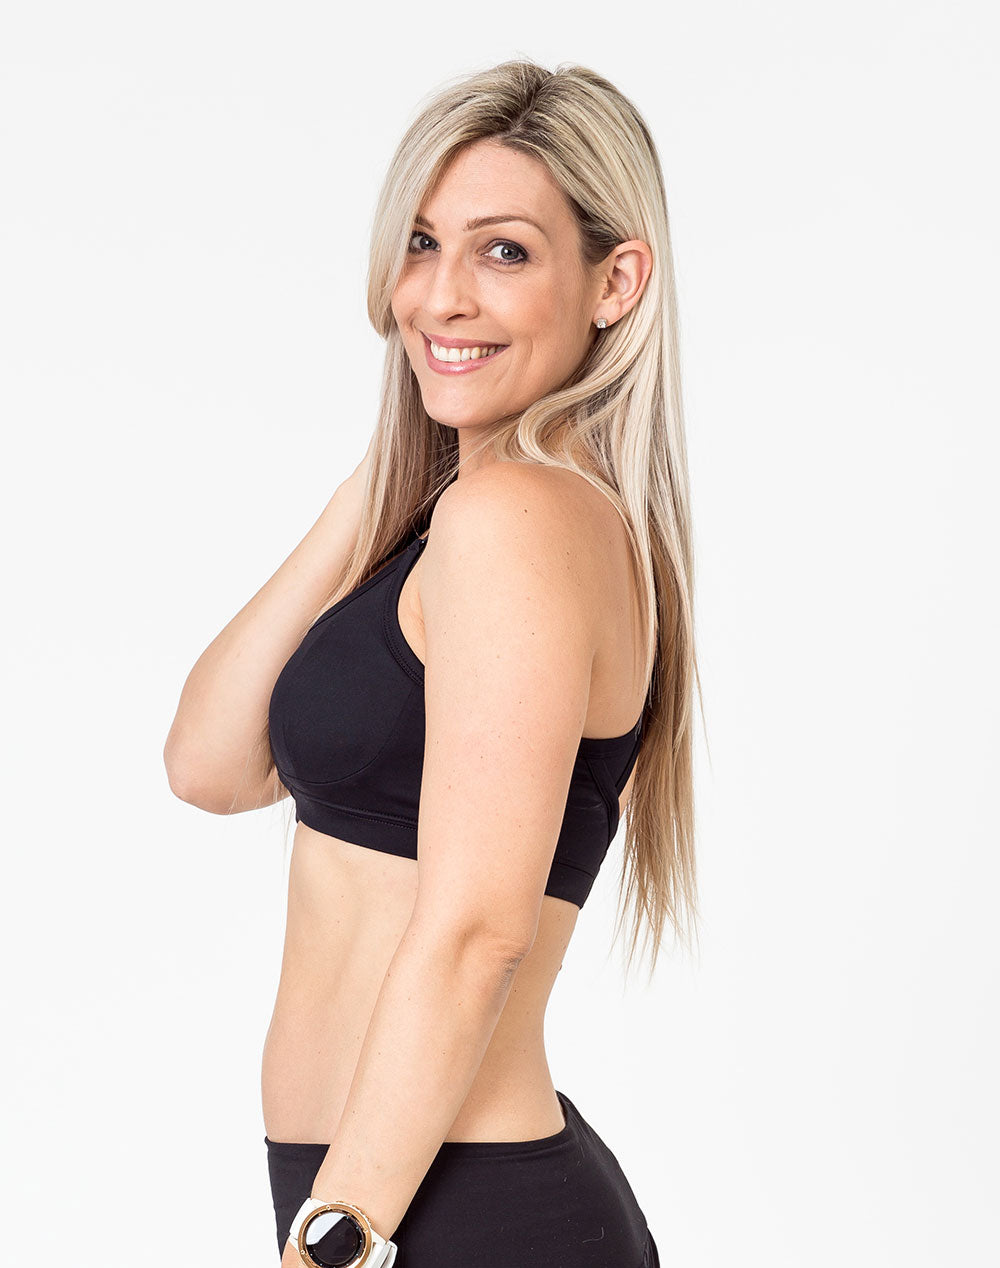 mum wearing a black racerback nursing bra side view